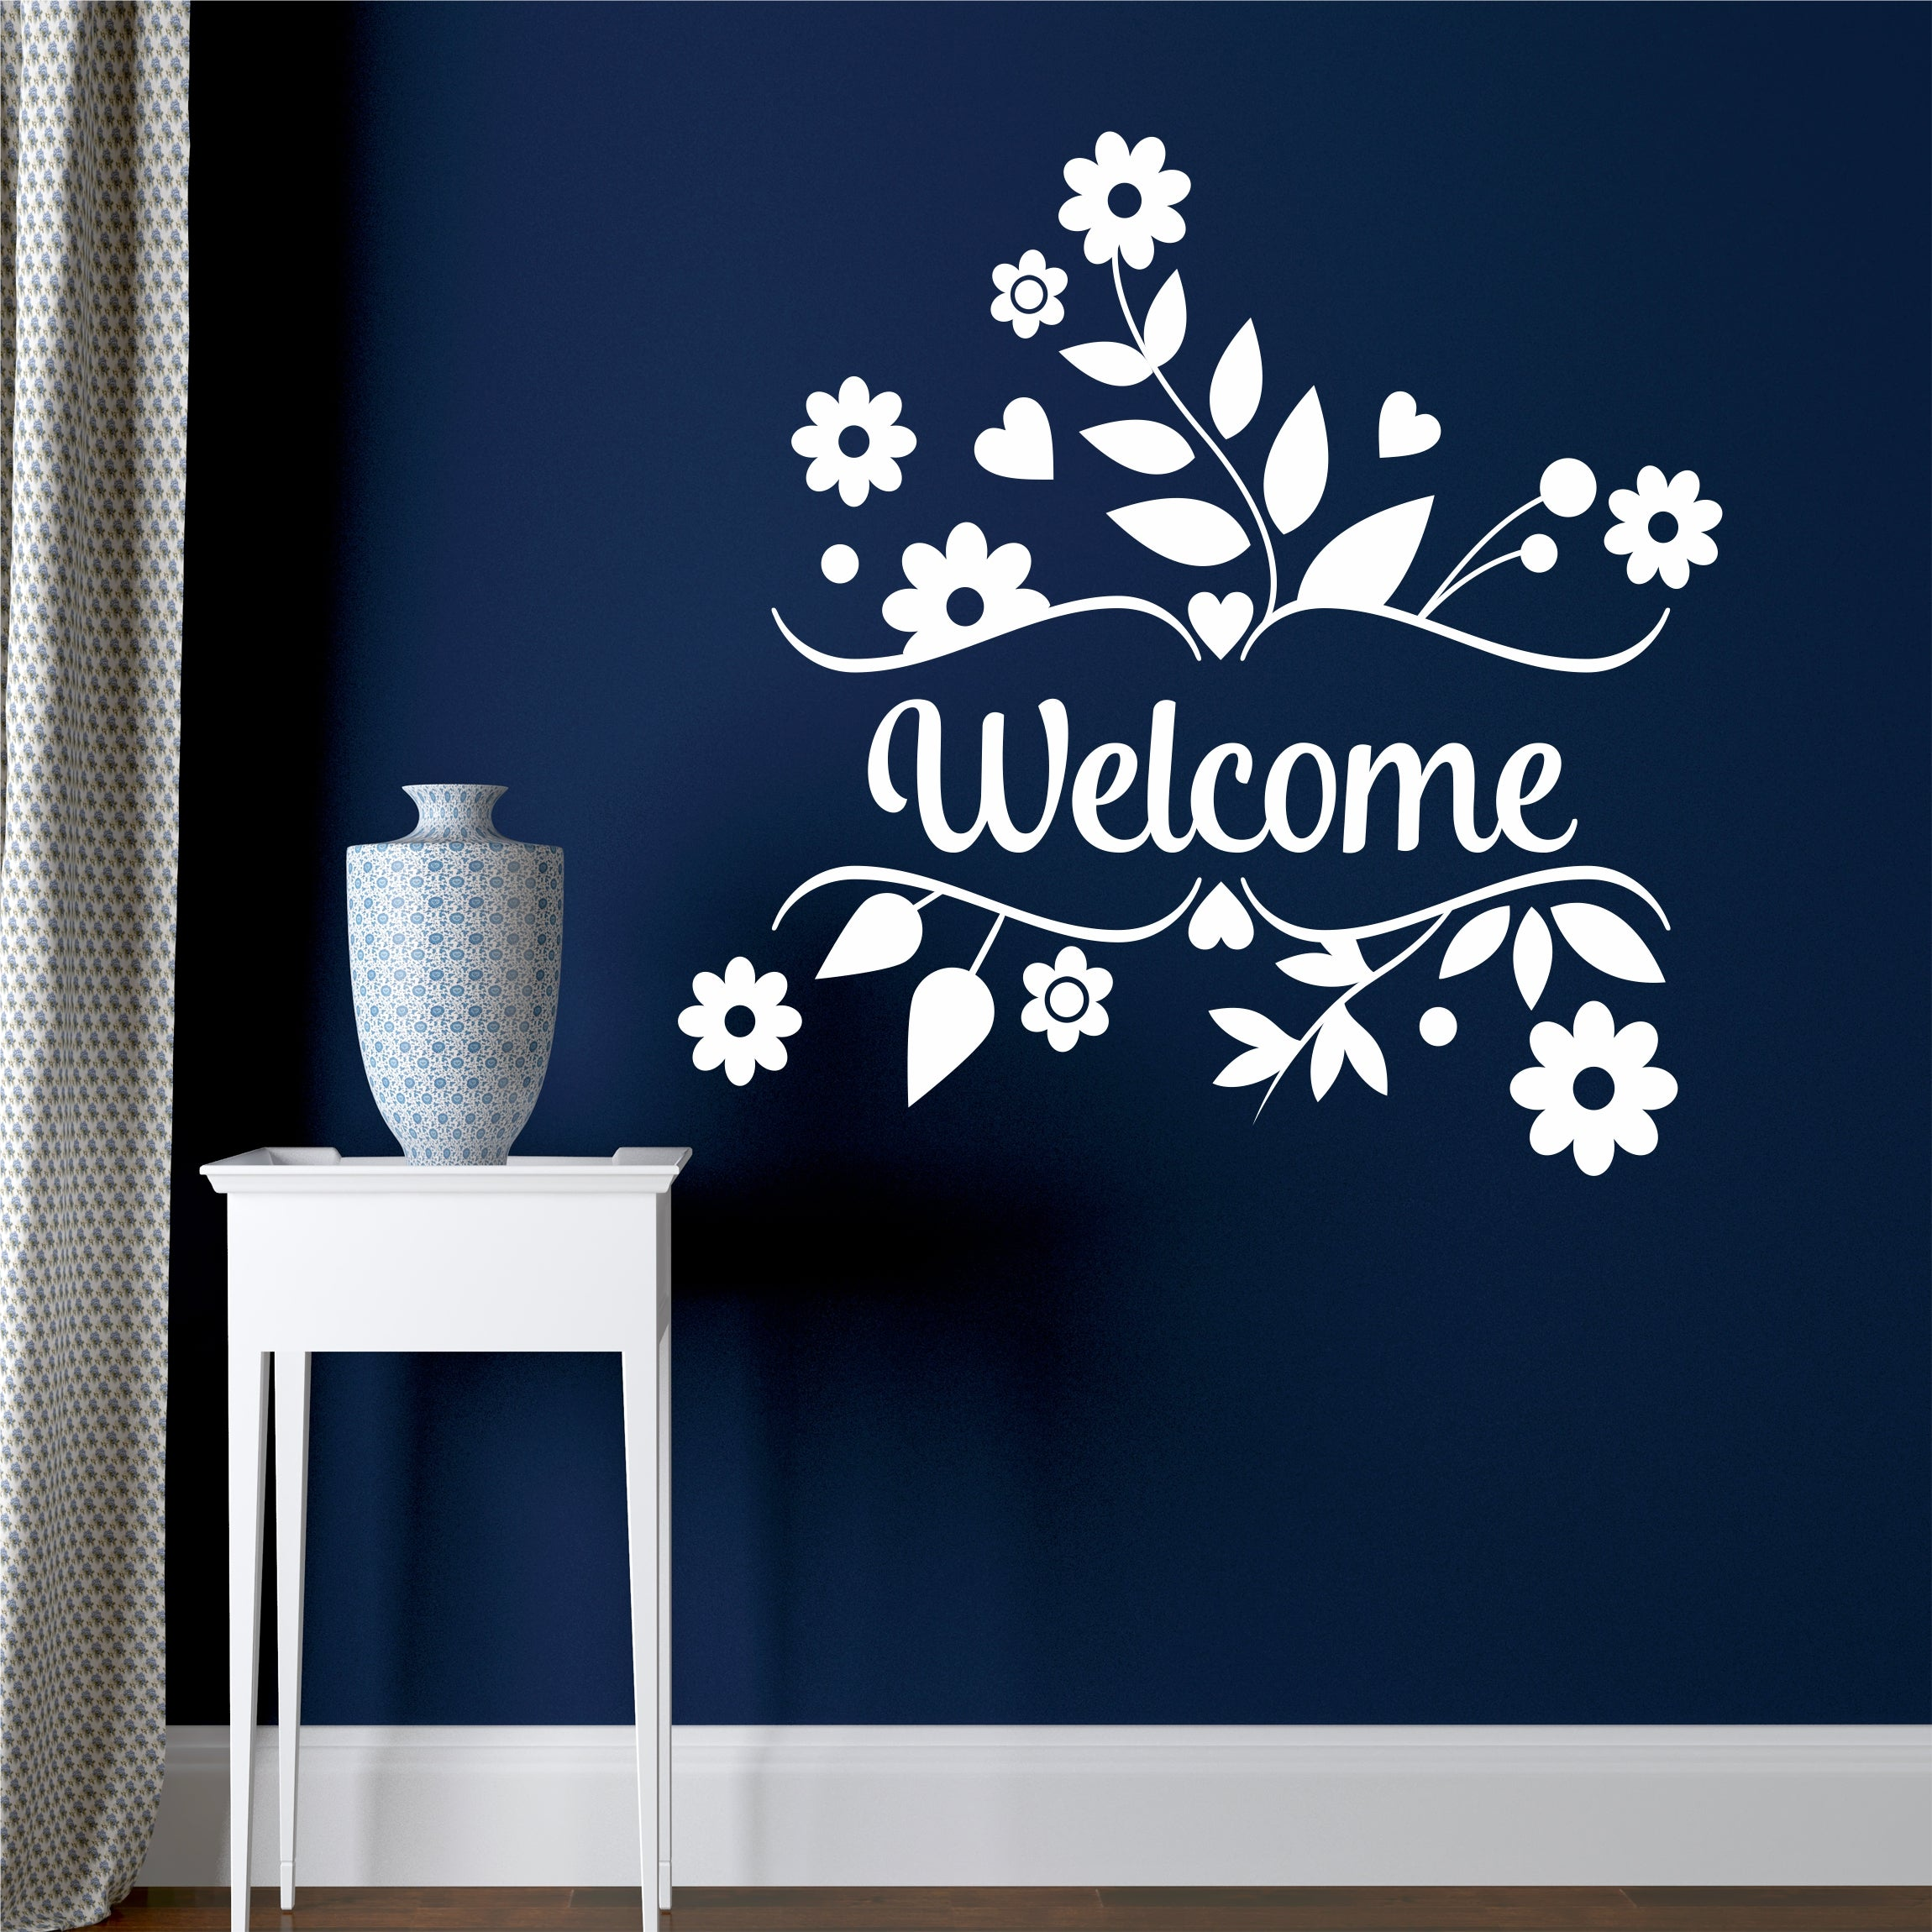 Decorative Flower Welcome Wall Decal Floral Door Sign Window